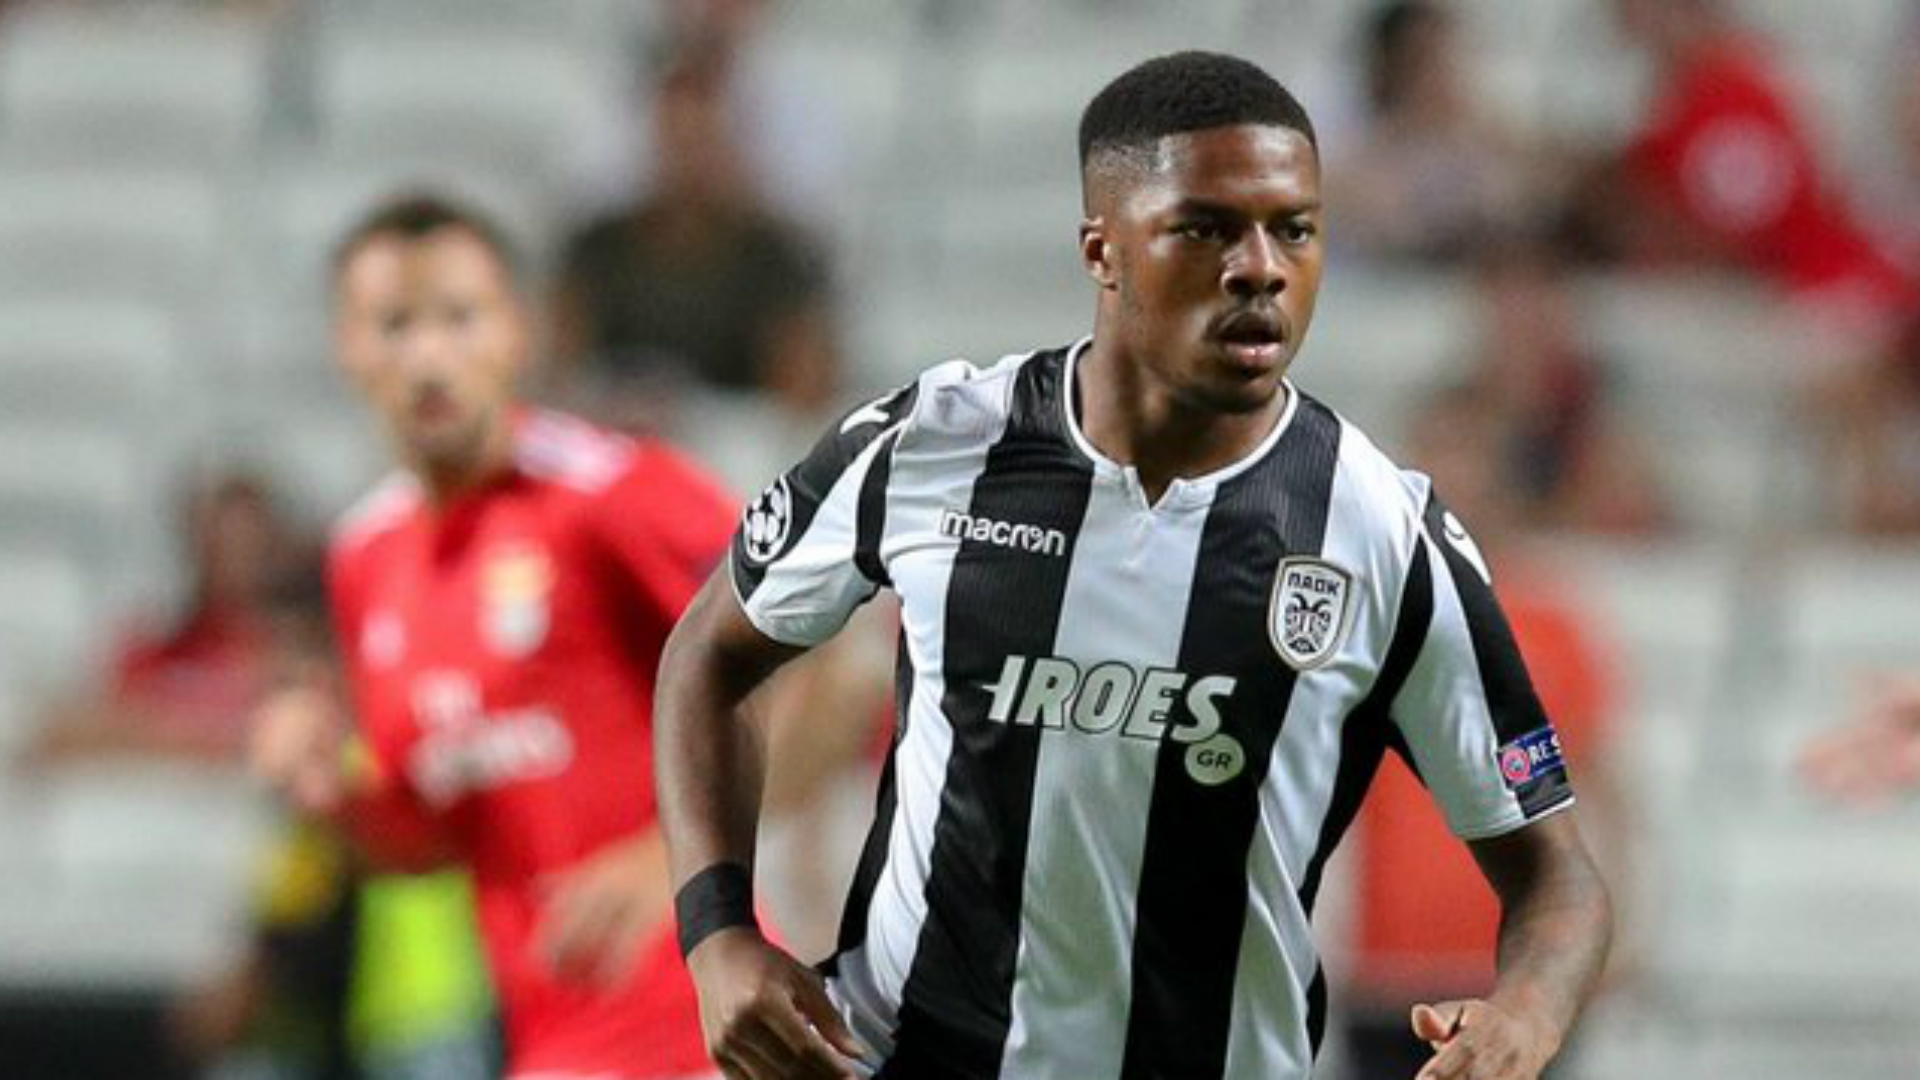 Paok benfica betting tips betting tips england ukraine highlights